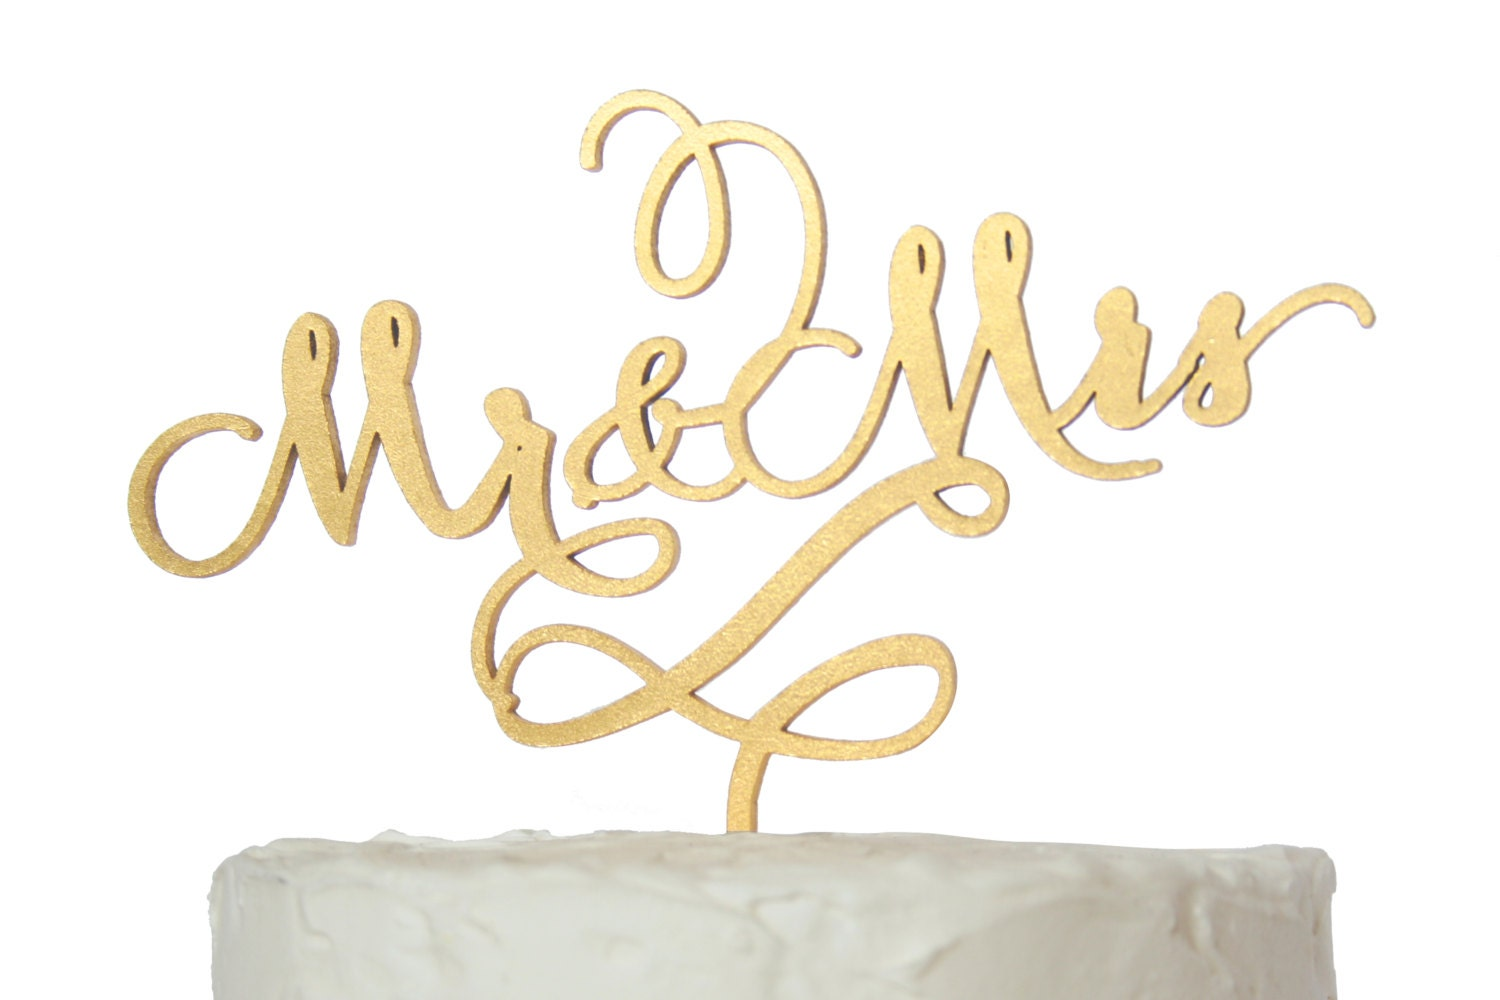 Mr and mrs cake topper gold calligraphy font rustic wood